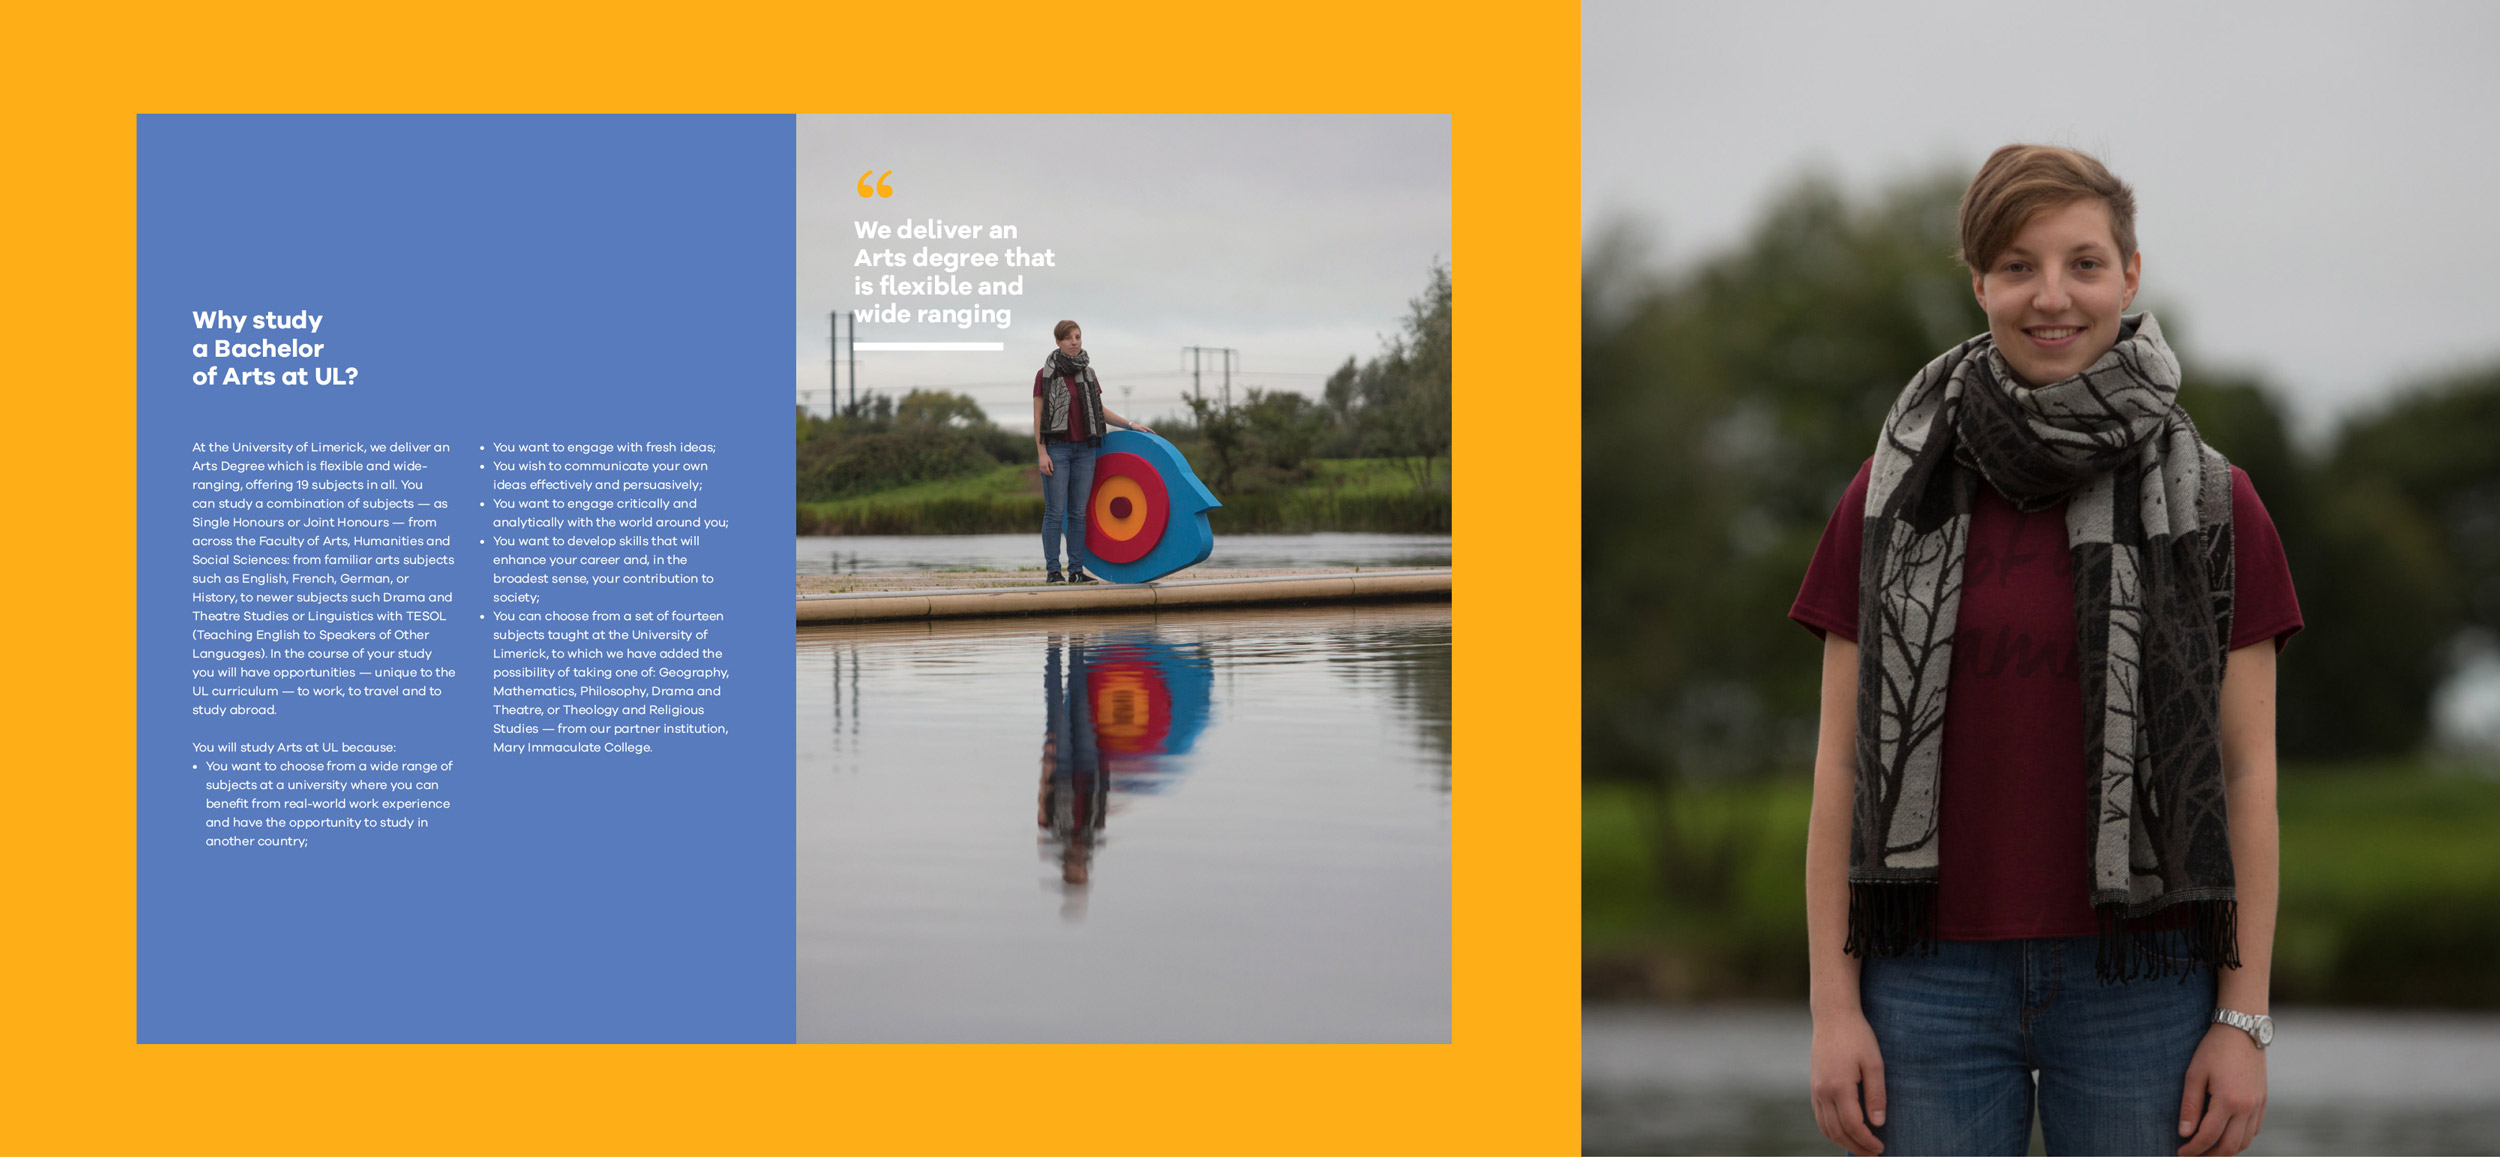 UL Bachelor of Arts graphic design and inside spread from the brochure featuring a student on campus